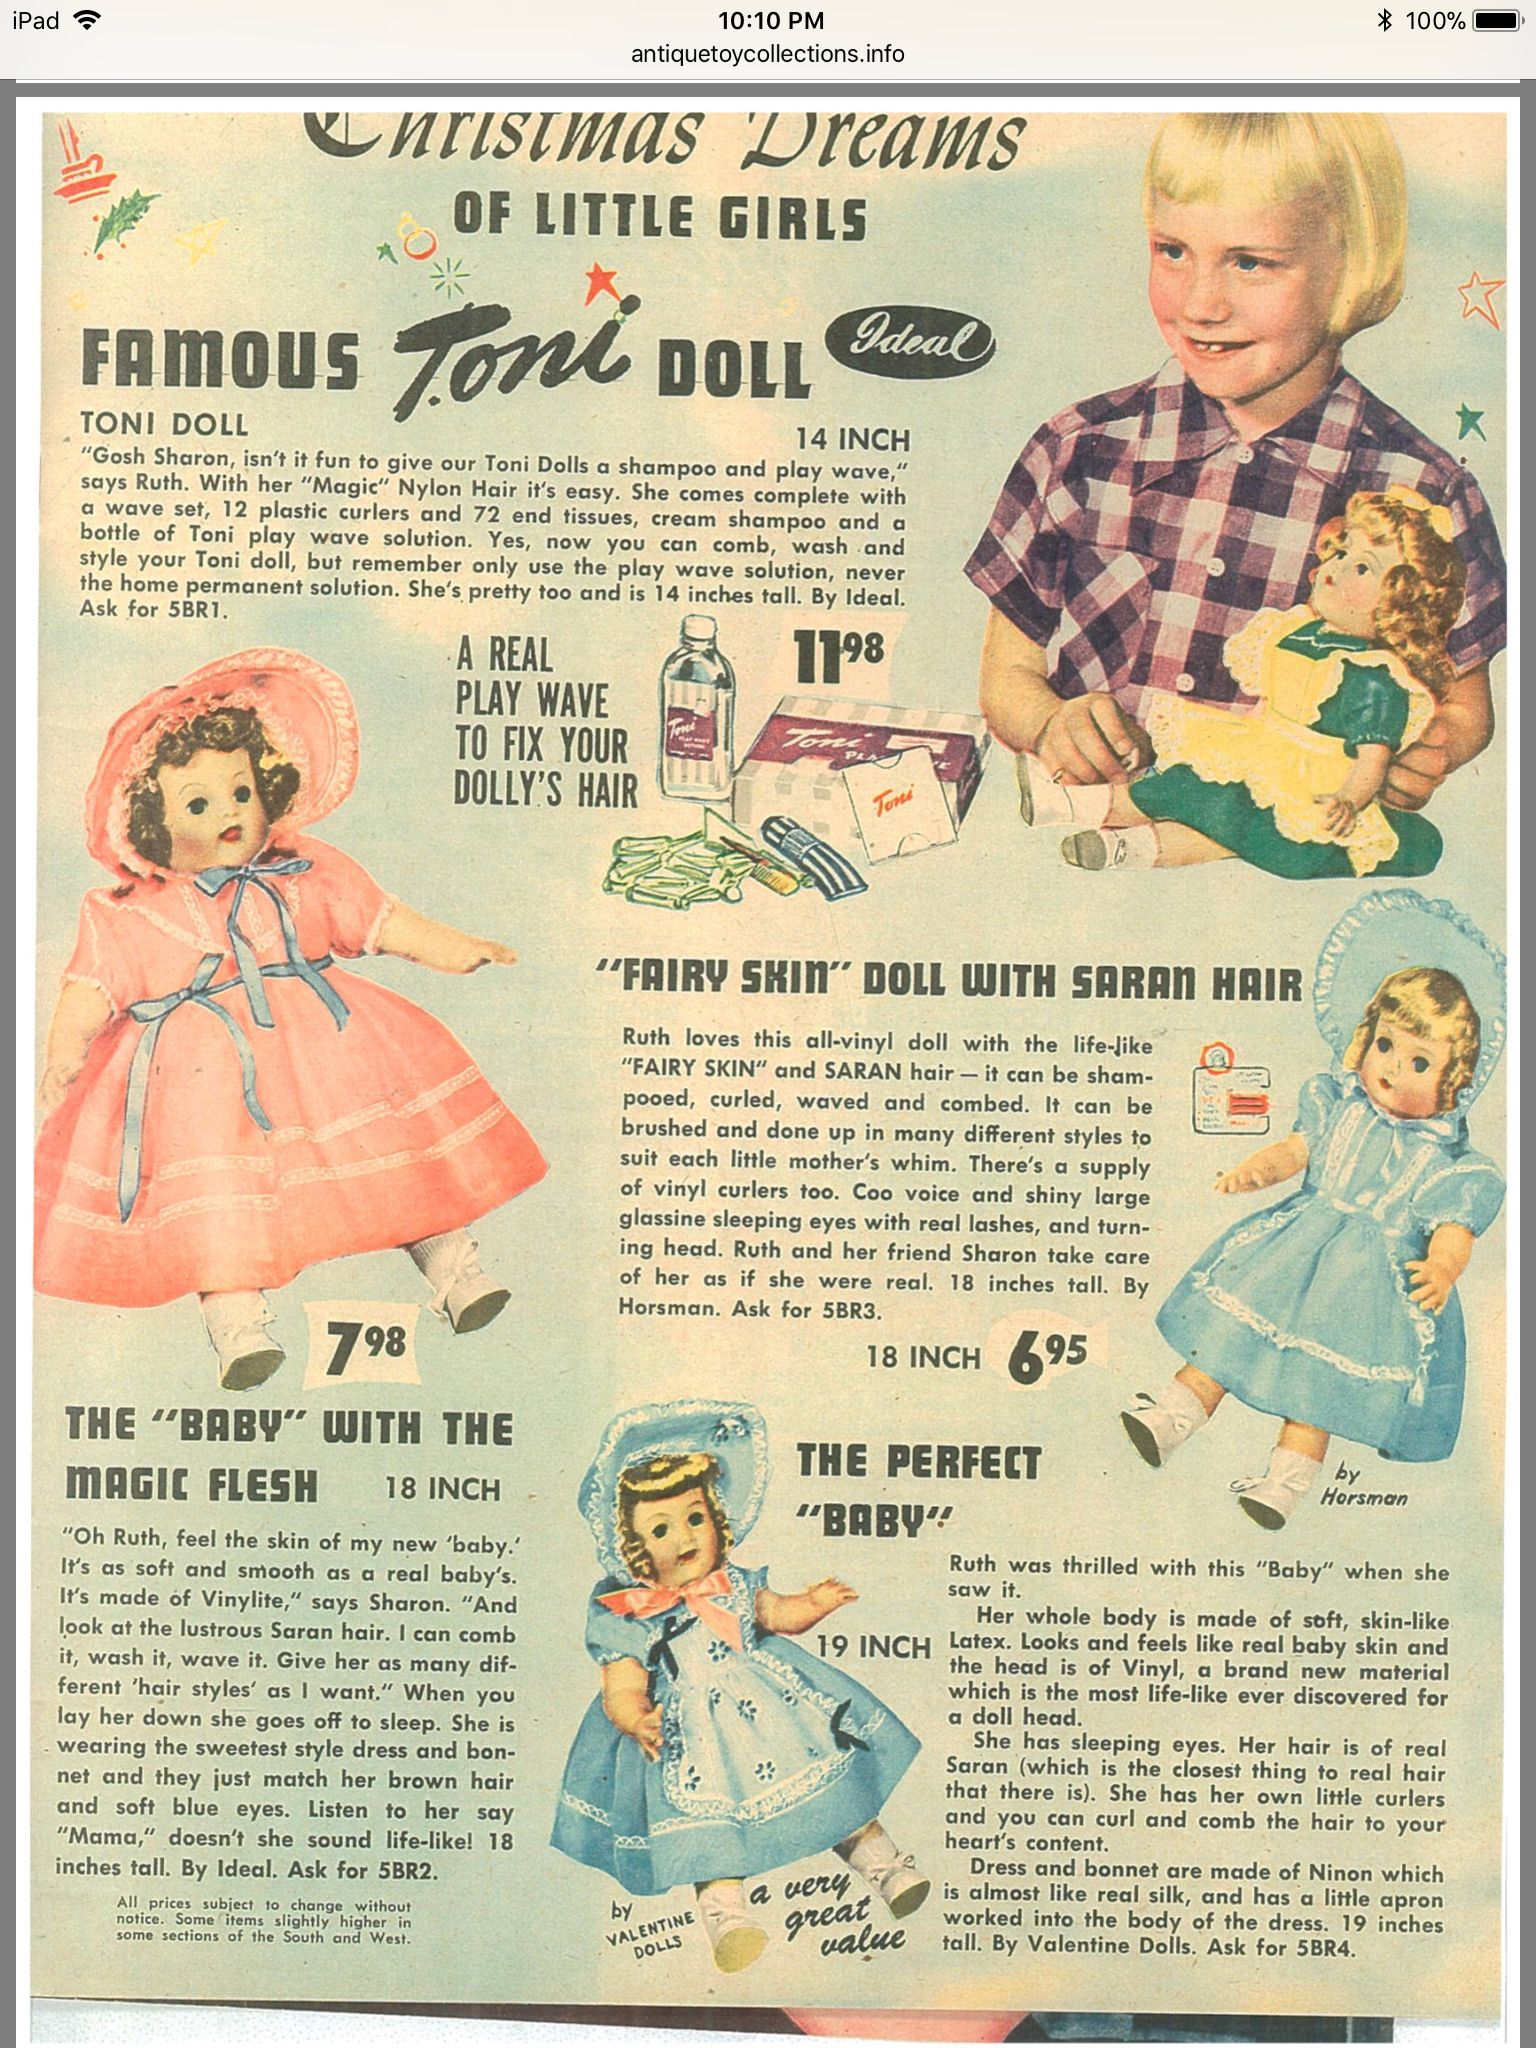 Vintage doll ads image by acwilson | Vintage ads, Baby ...